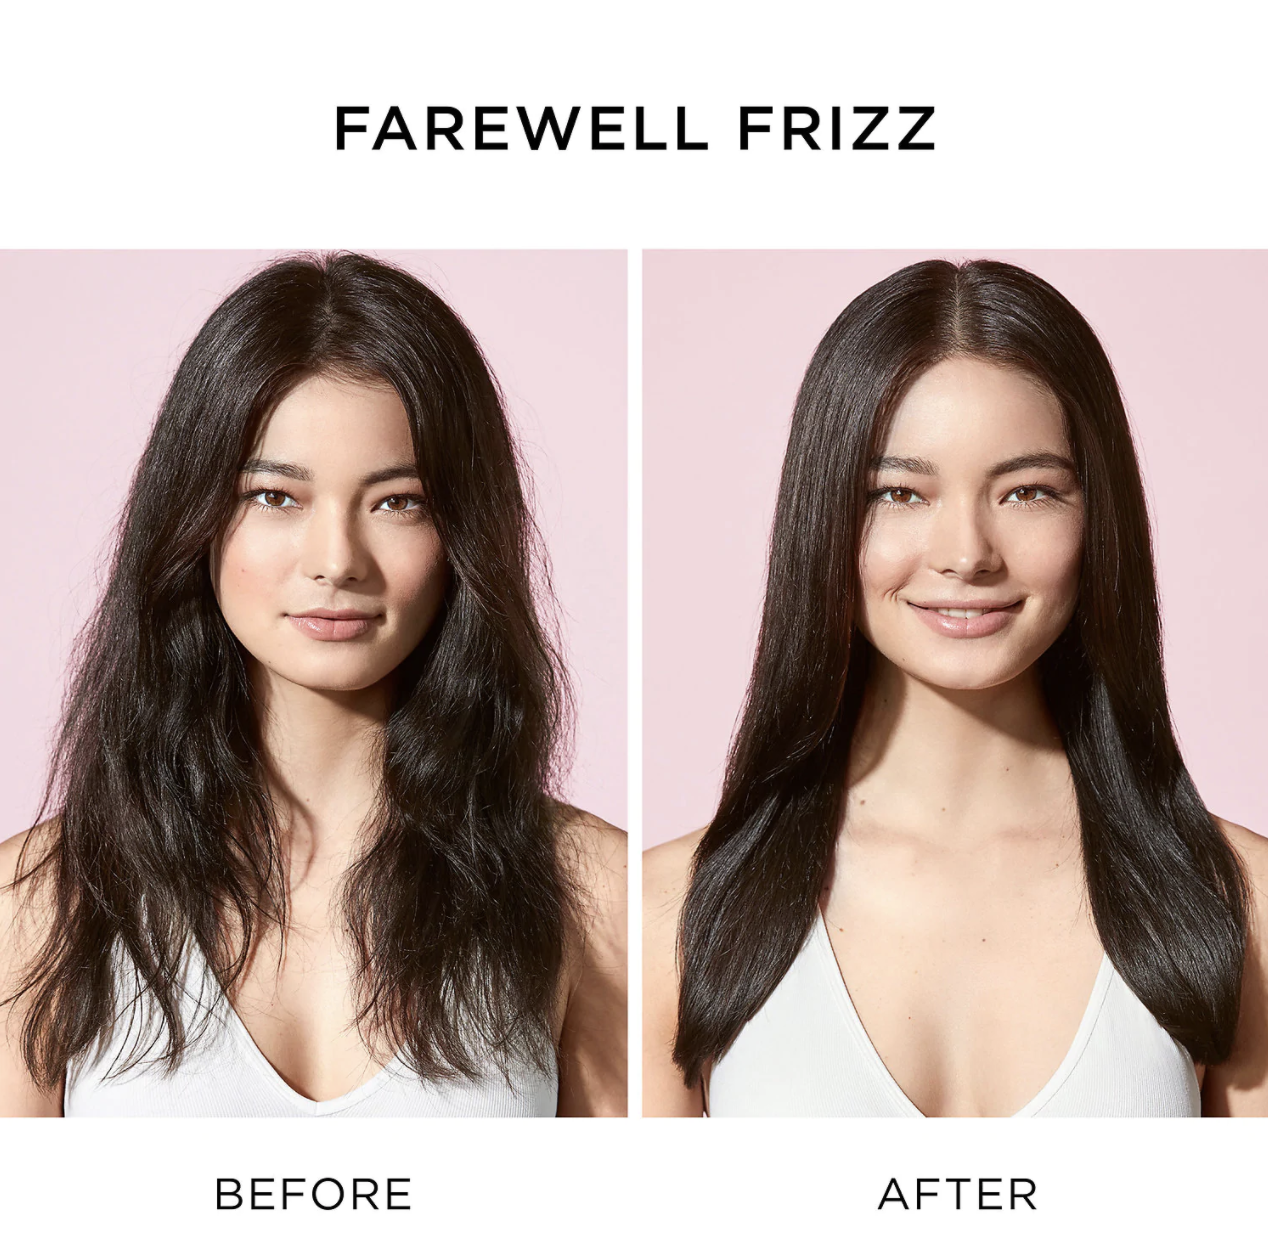 A model with frizzy flyaways at first, then smoother hair after using the product